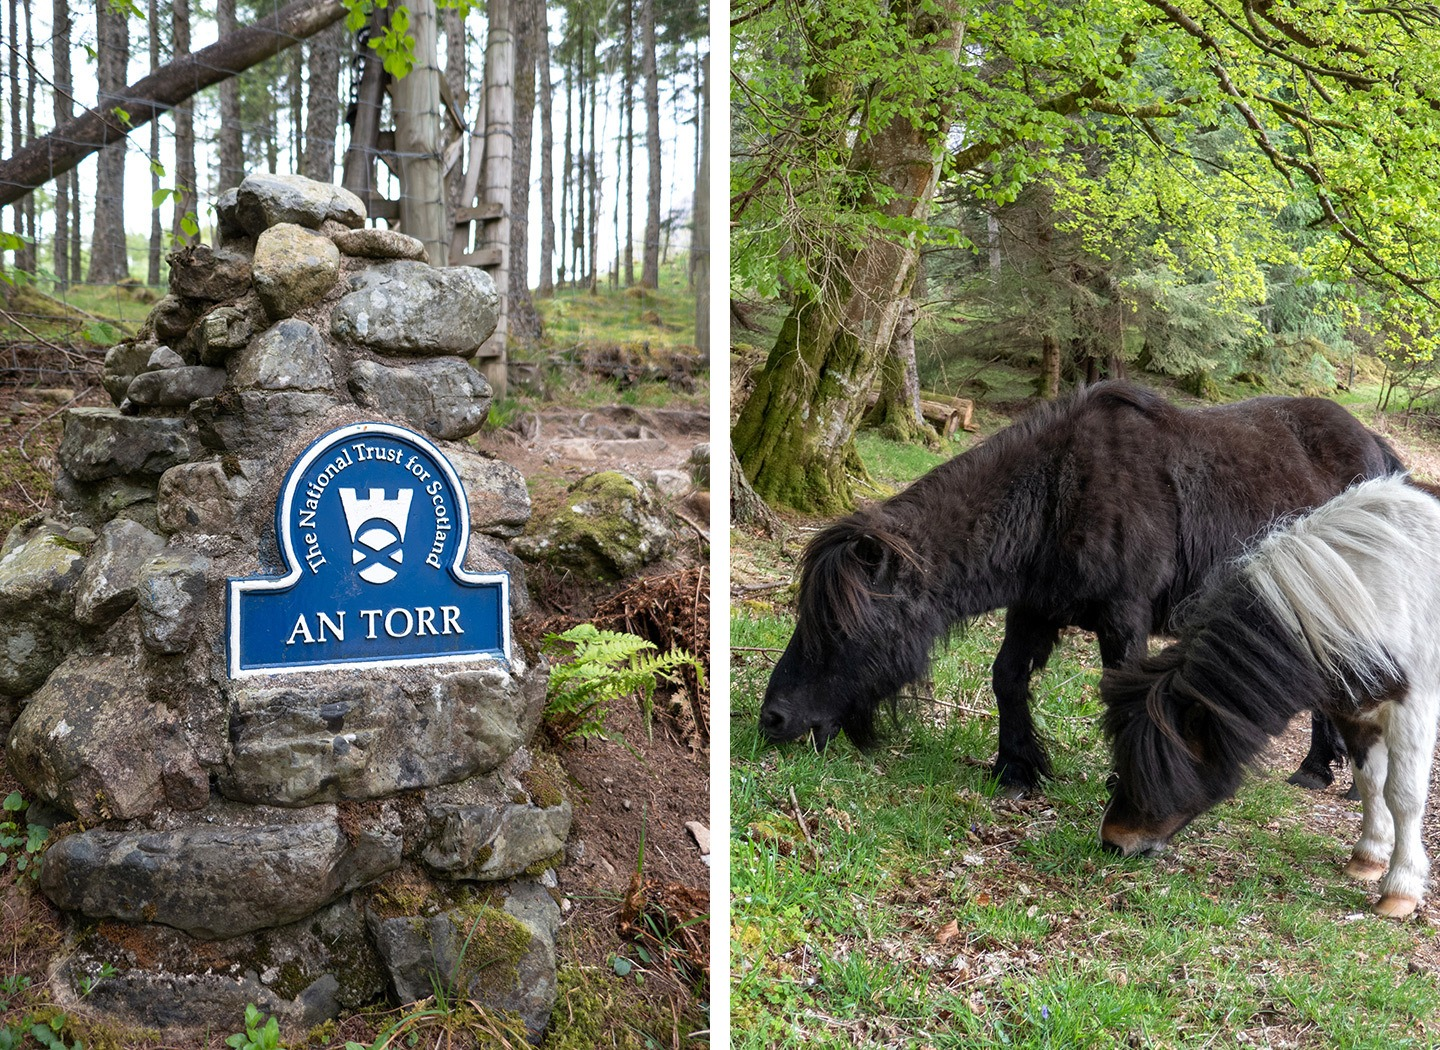 Hiking in Ann Torr in the Highlands – one of the top things to do in Glencoe